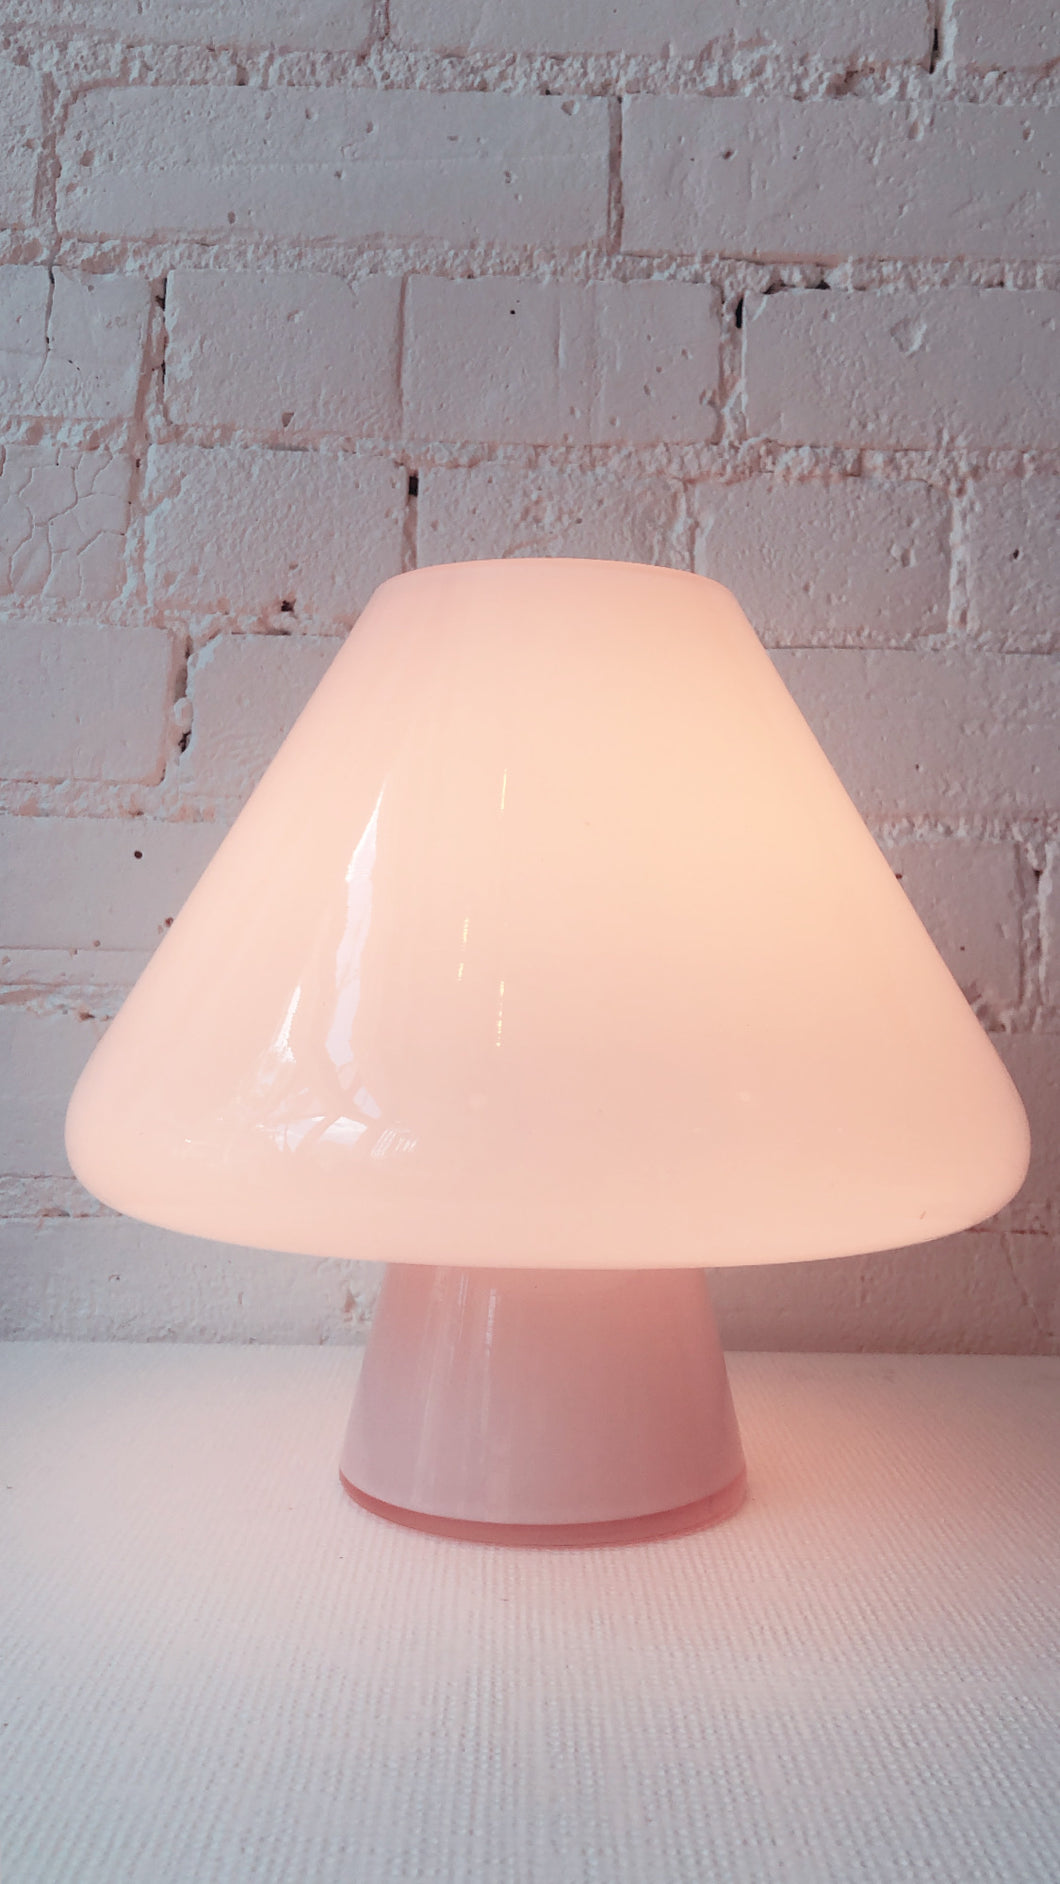 Rare Monumental Vintage Murano Lamp by RES Lighting (Venice Italy)